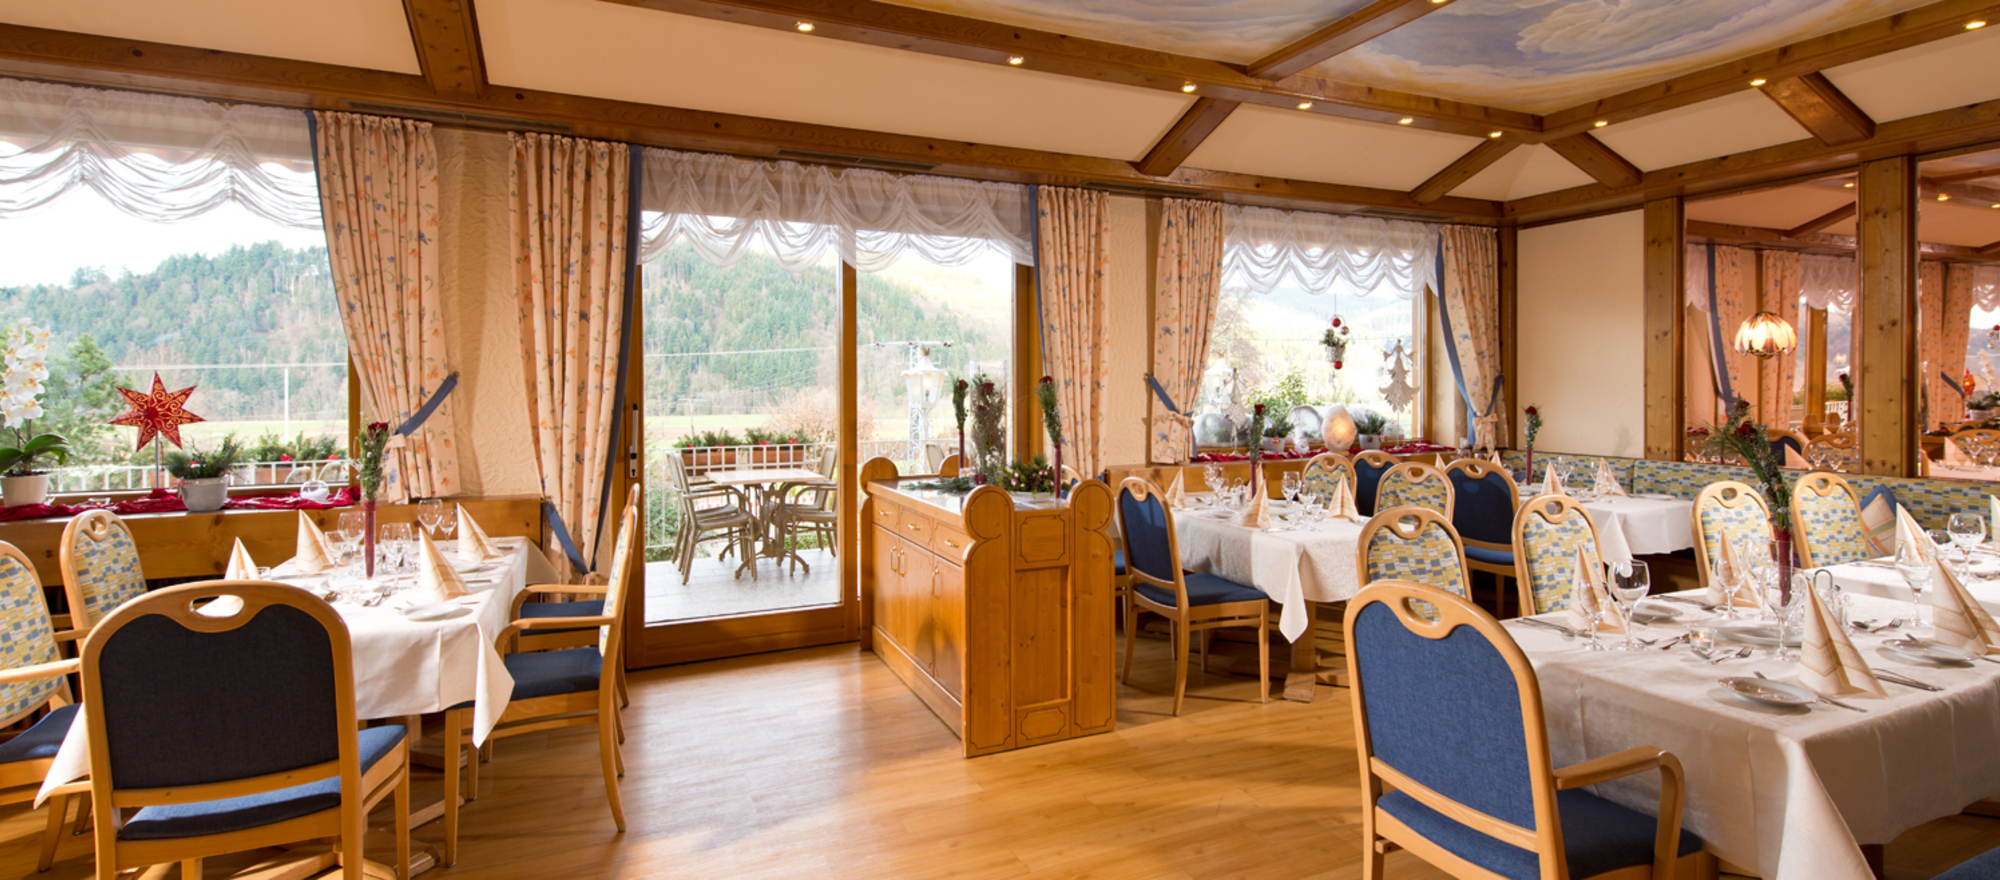 Schwedistube, bright room overlooking the terrace and valley at the 4-star Ringhotel Schwarzwald-Hotel Silberkoenig in Gutach-Bleibach